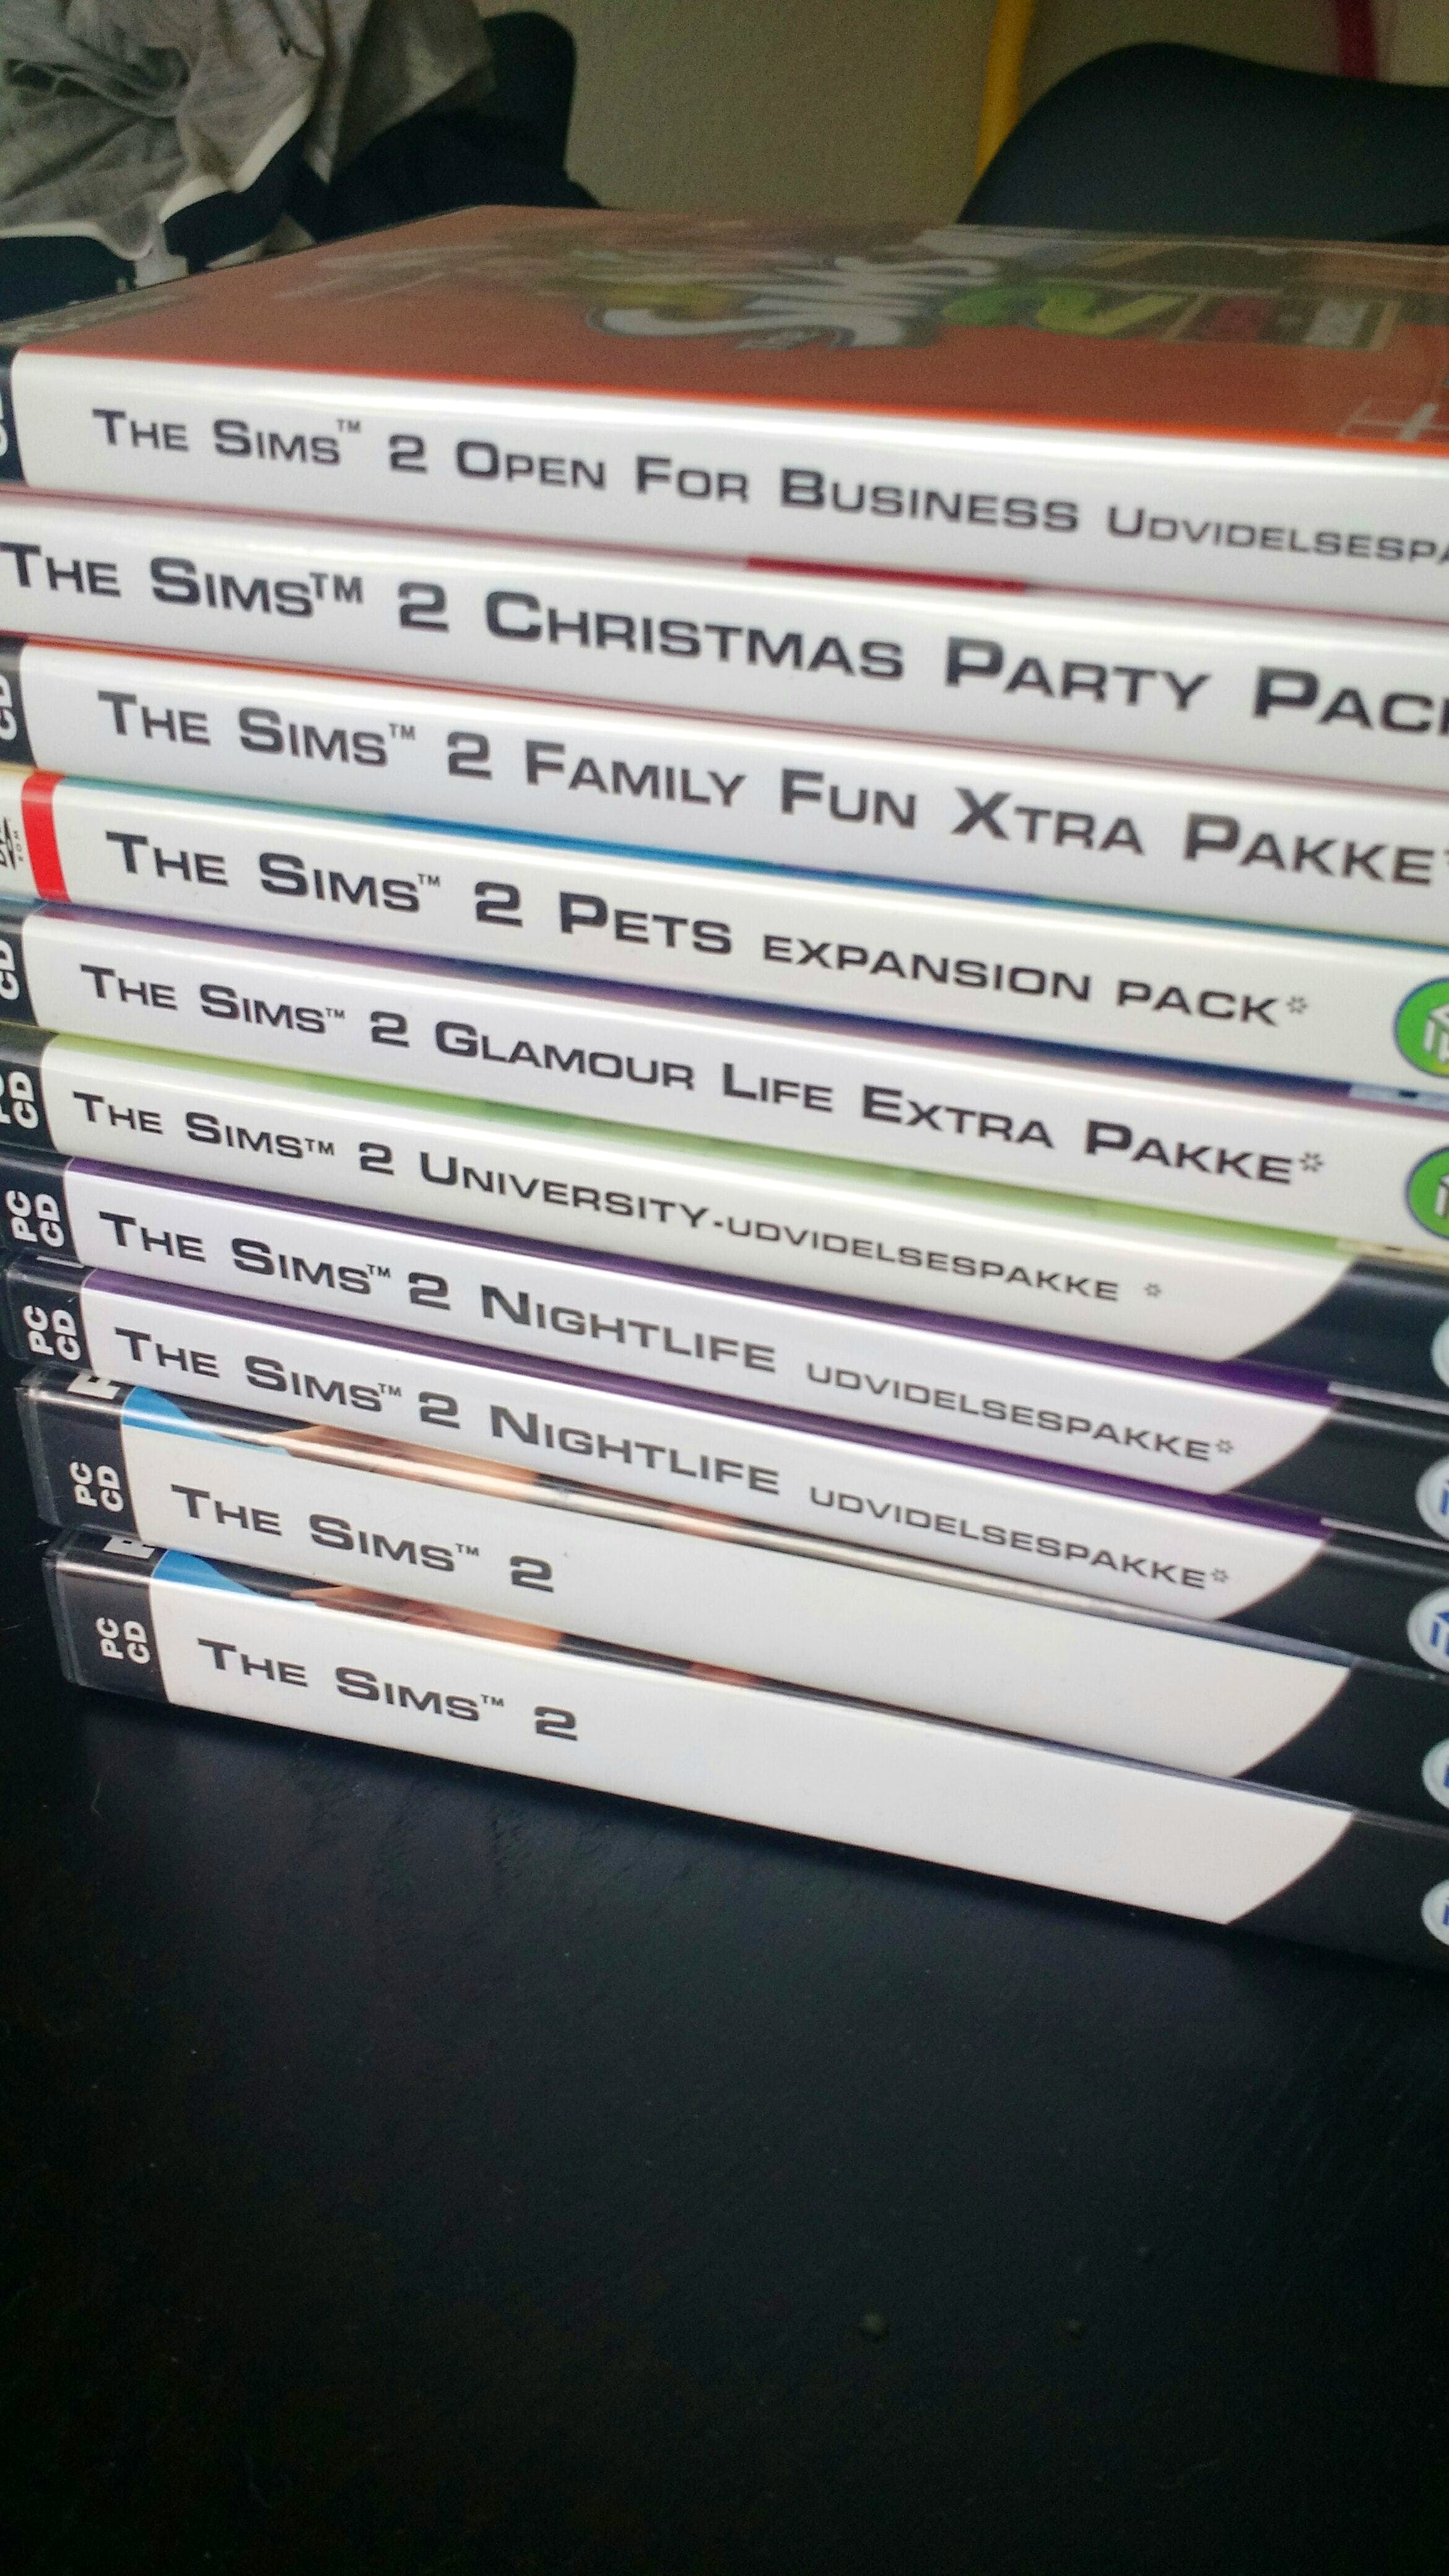 Sims 2 + xtra packs